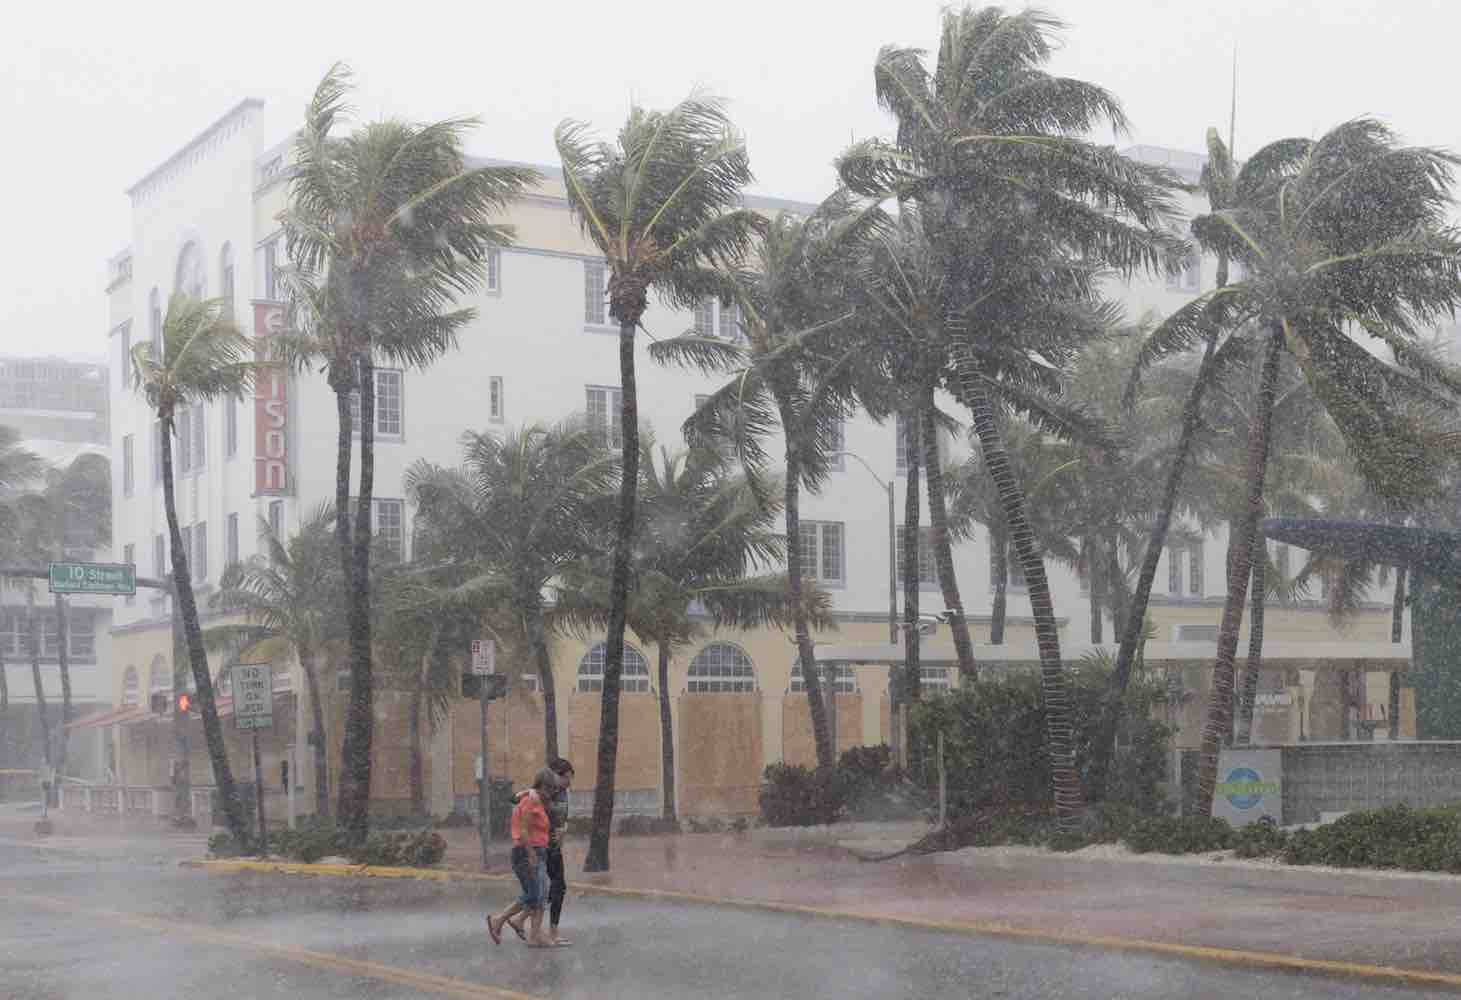 "<div class=""meta image-caption""><div class=""origin-logo origin-image kabc""><span>kabc</span></div><span class=""caption-text"">People walk down the street as winds and rain begin to hit as outer bands of Hurricane Irma arrive in Miami Beach, Florida, September 9, 2017.  (SAUL LOEB/AFP/Getty)</span></div>"